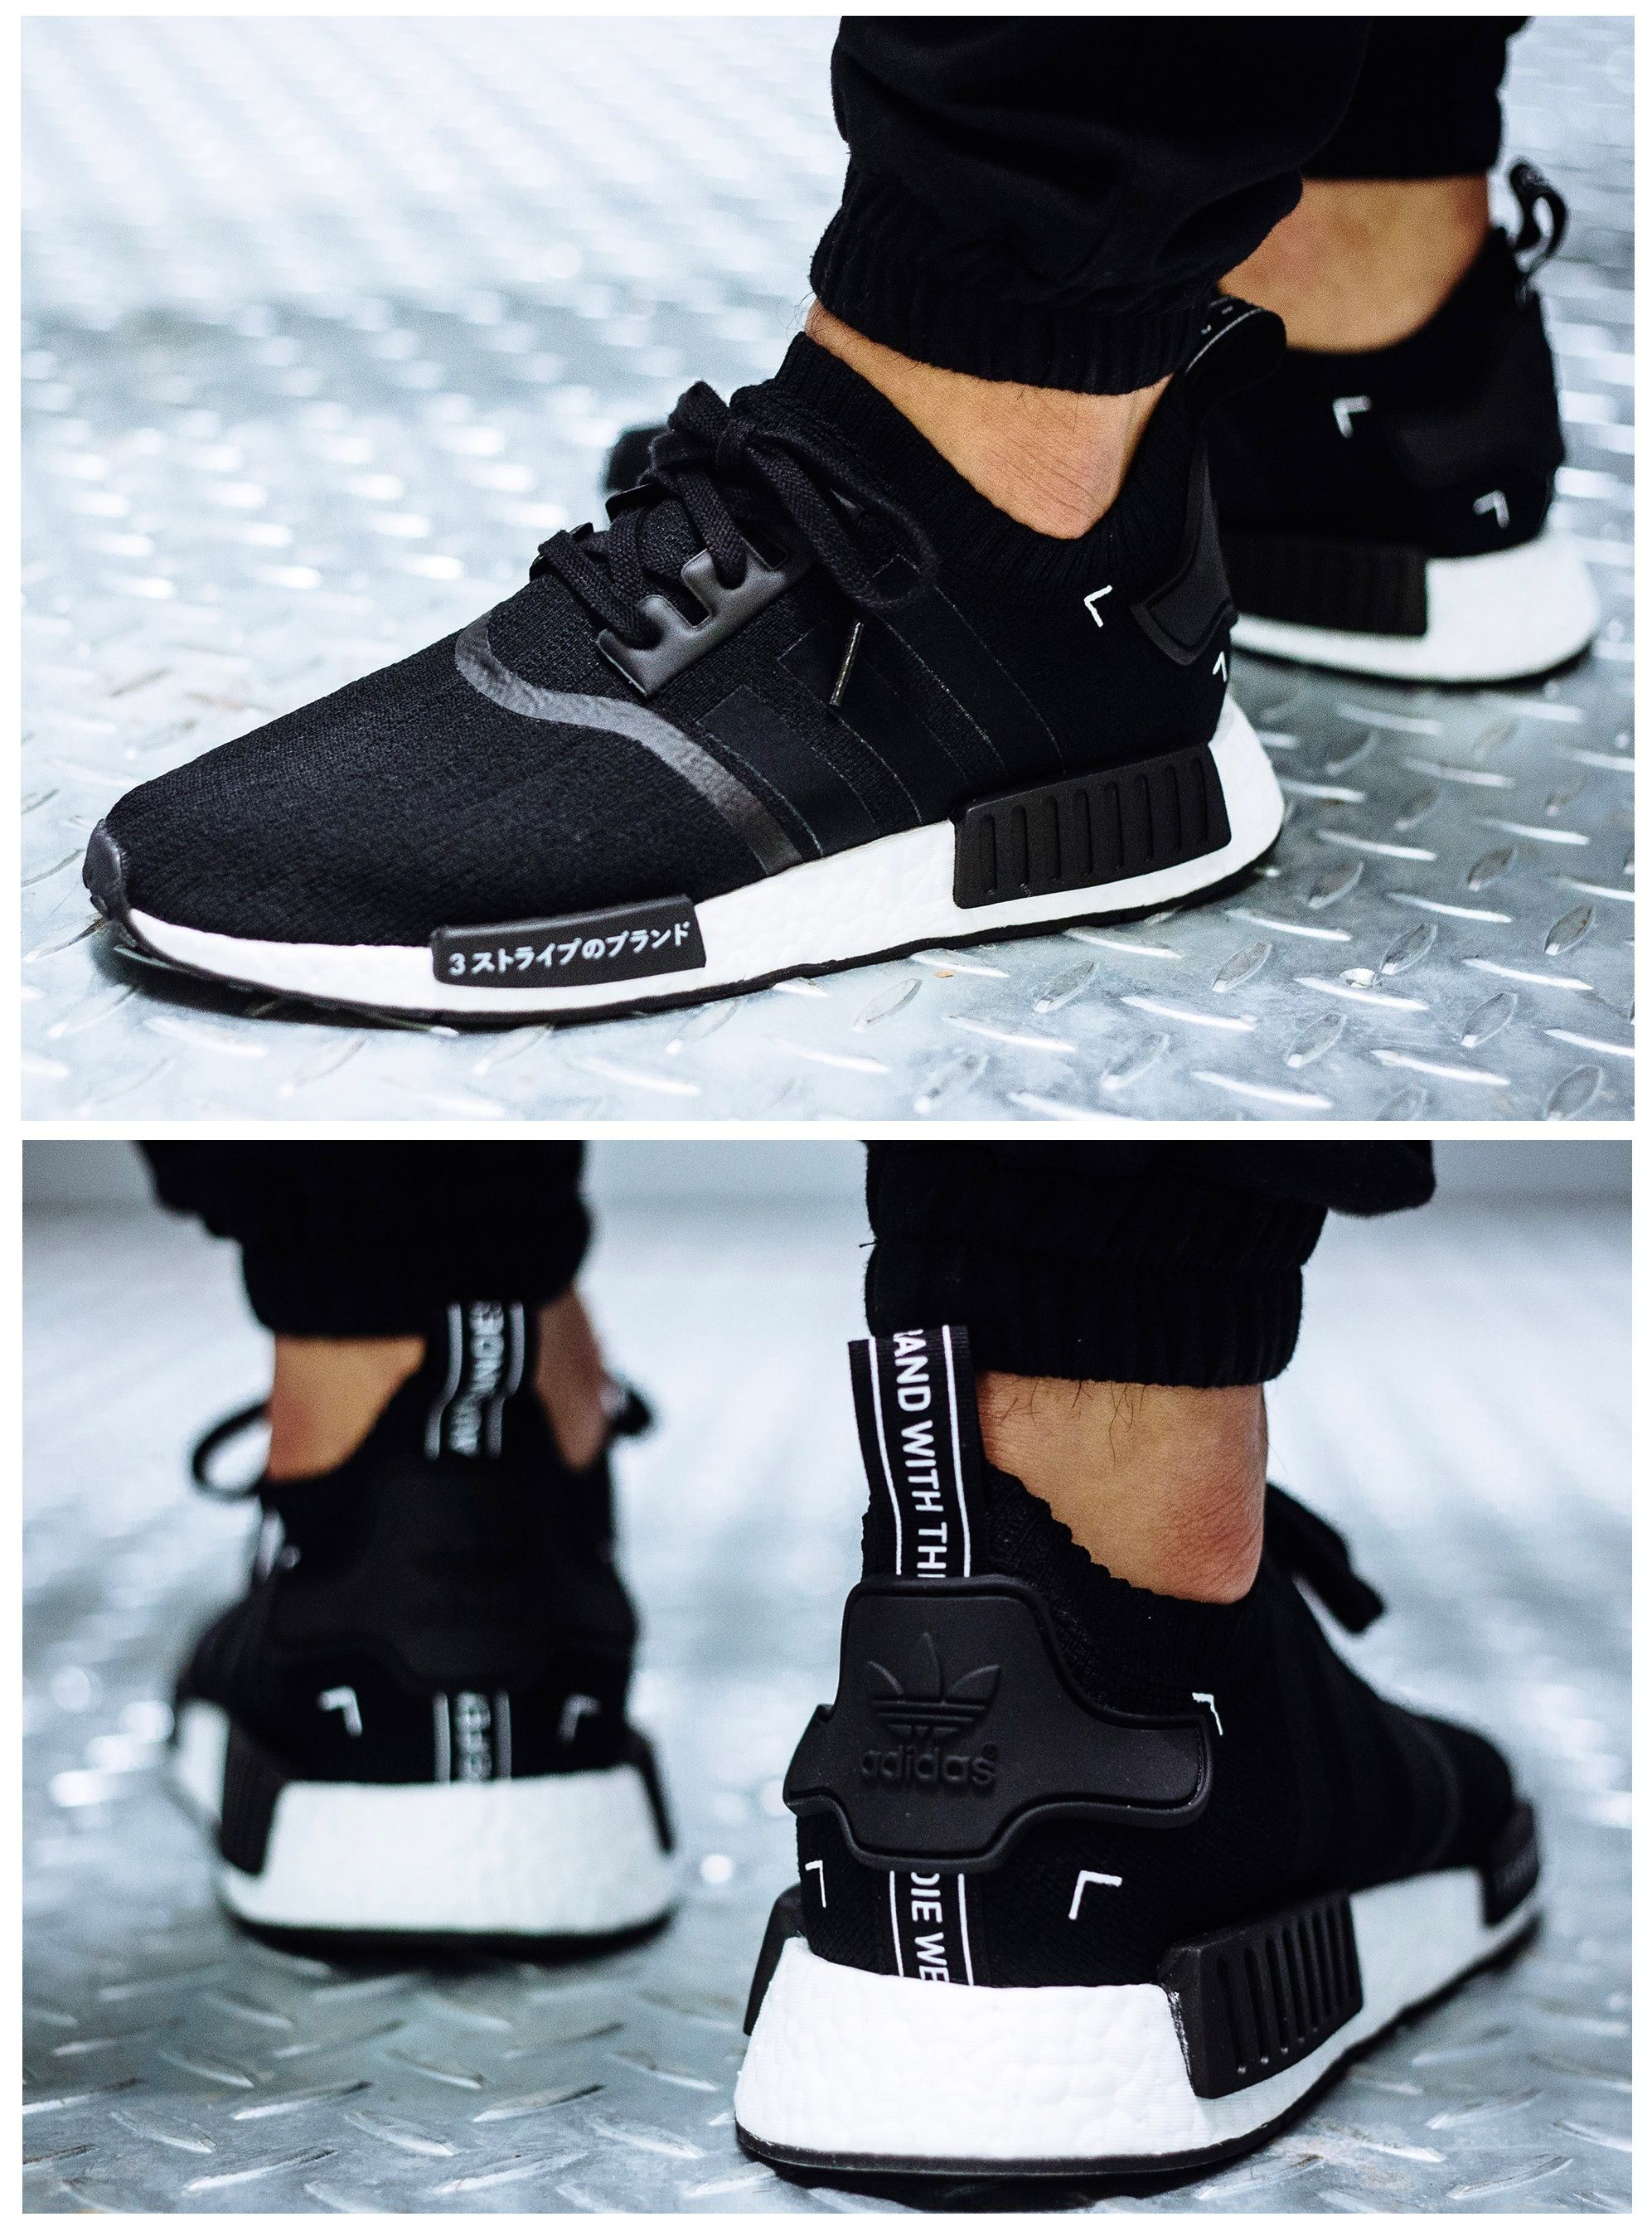 58a3079d43a adidas Originals NMD  Black